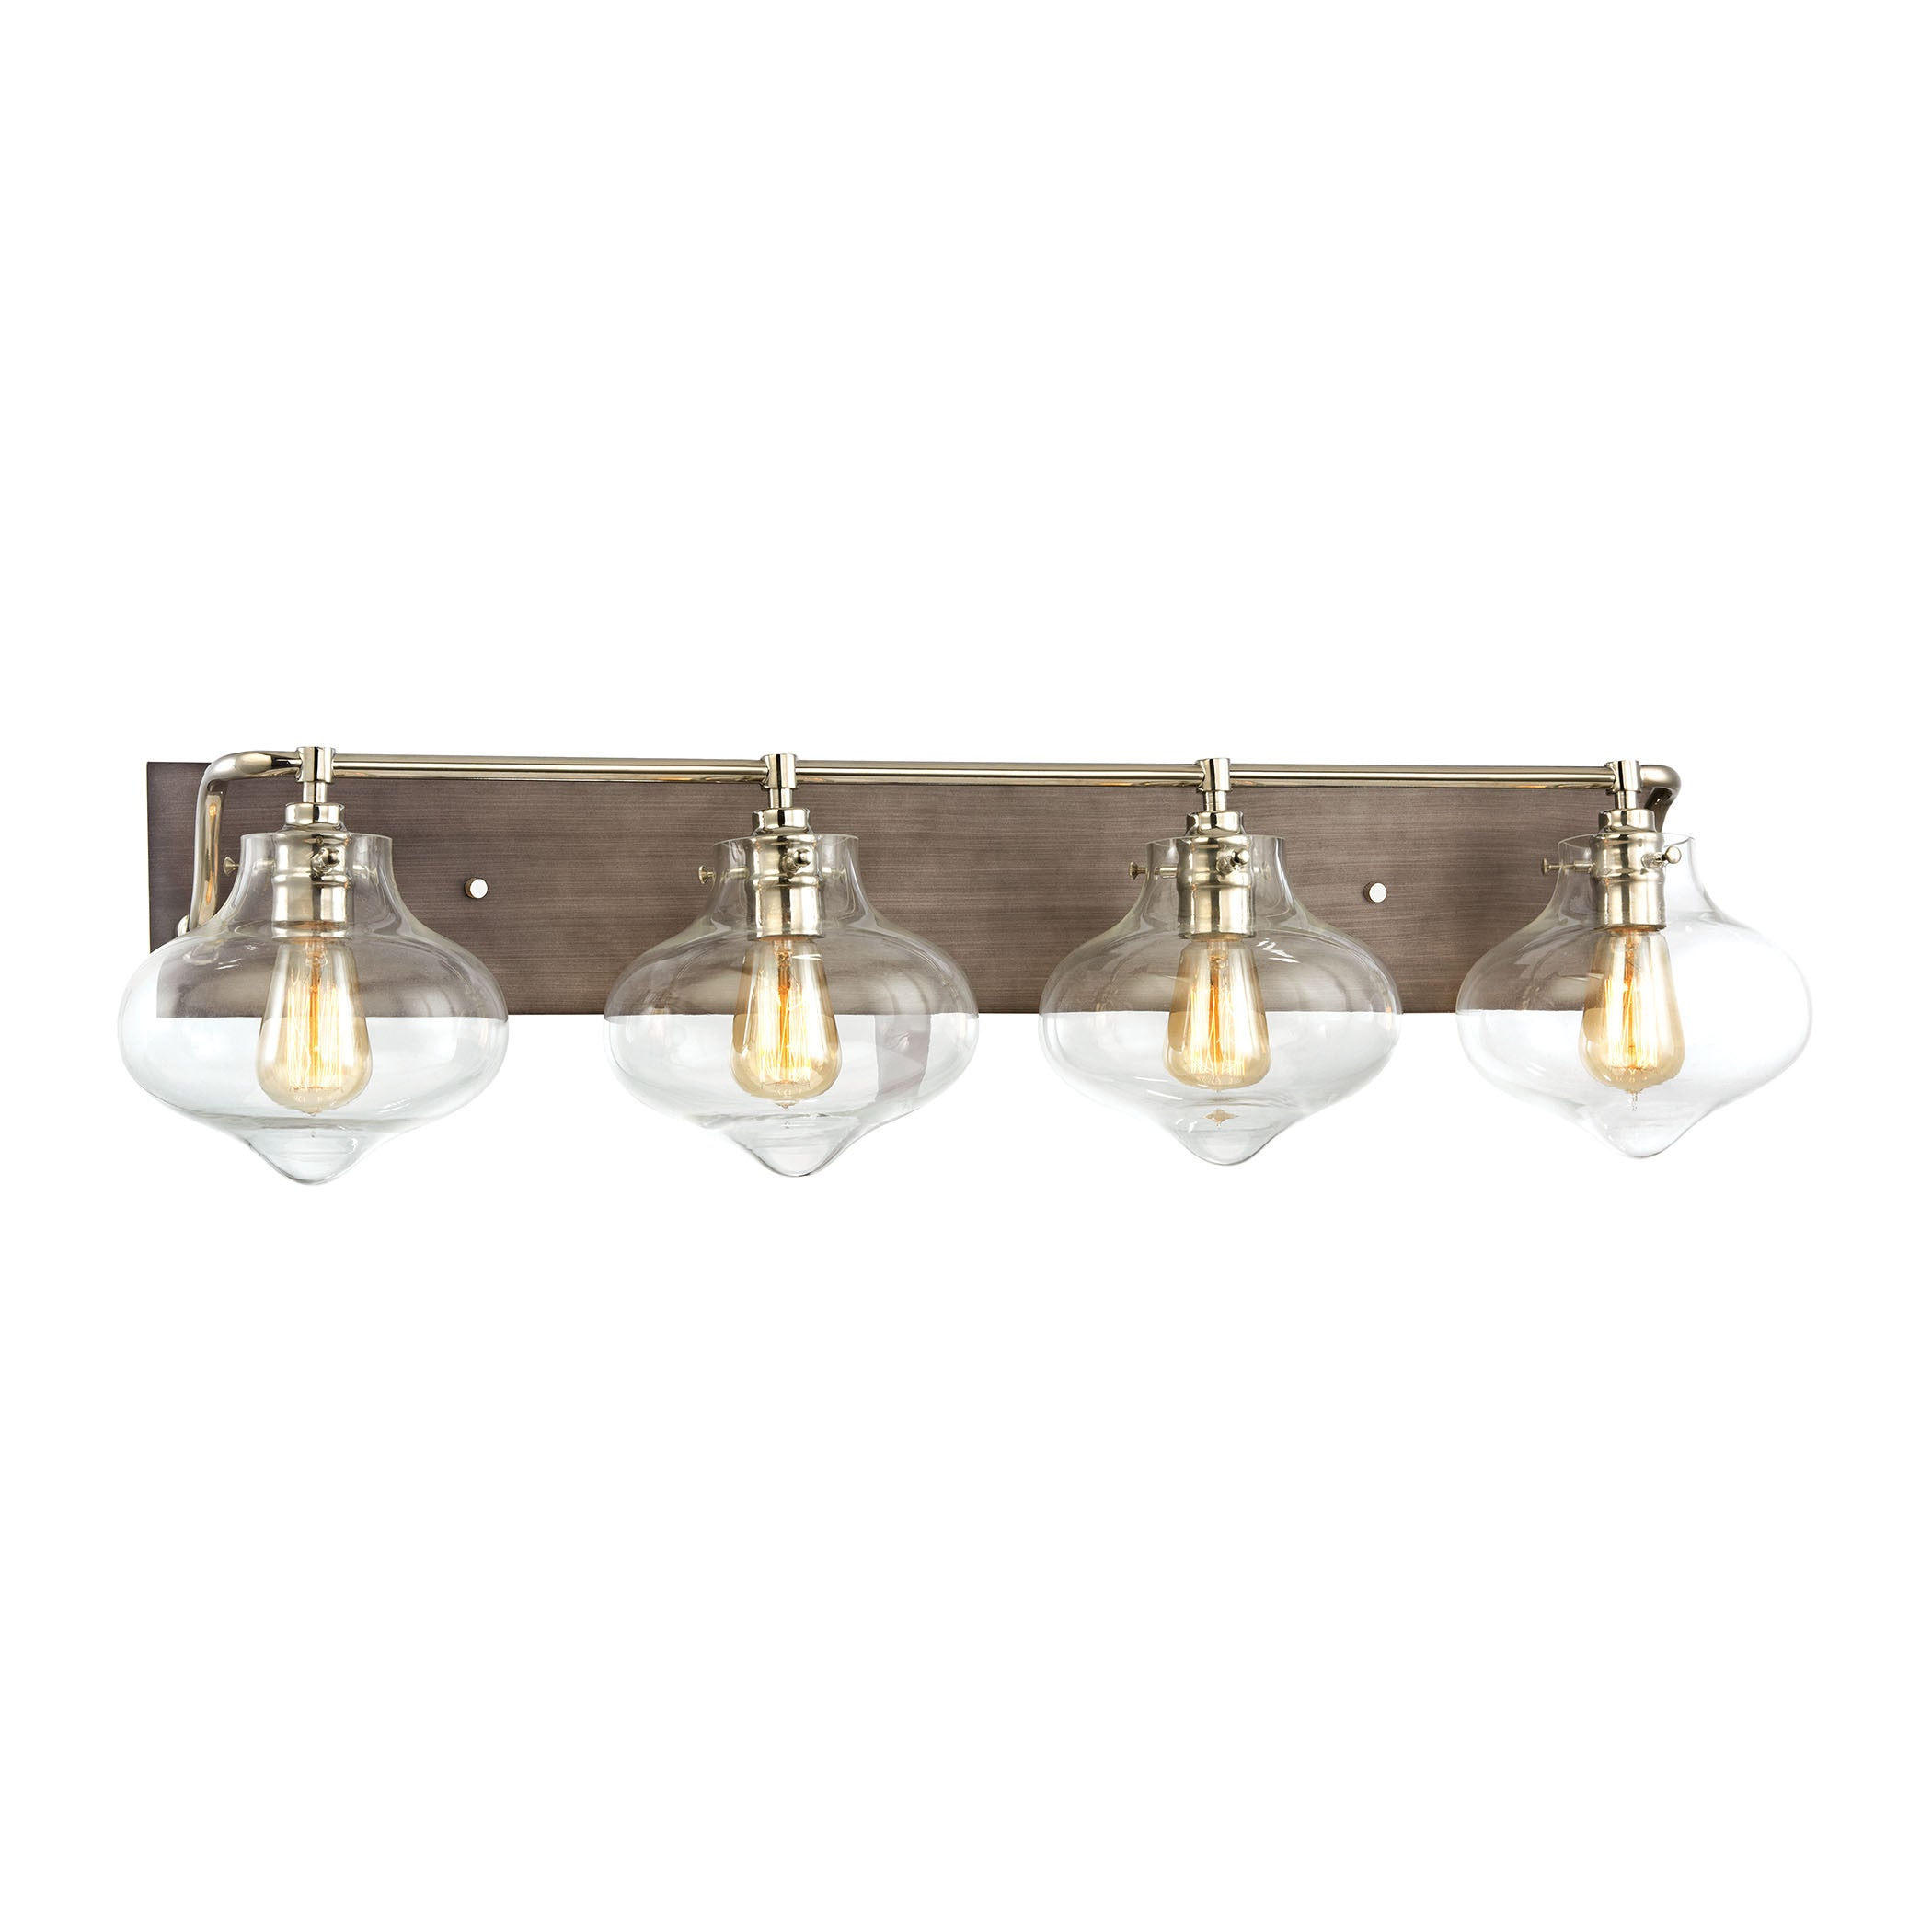 Elk Lighting Modern Farmhouse: Kelsey Bath Light By Elk Lighting